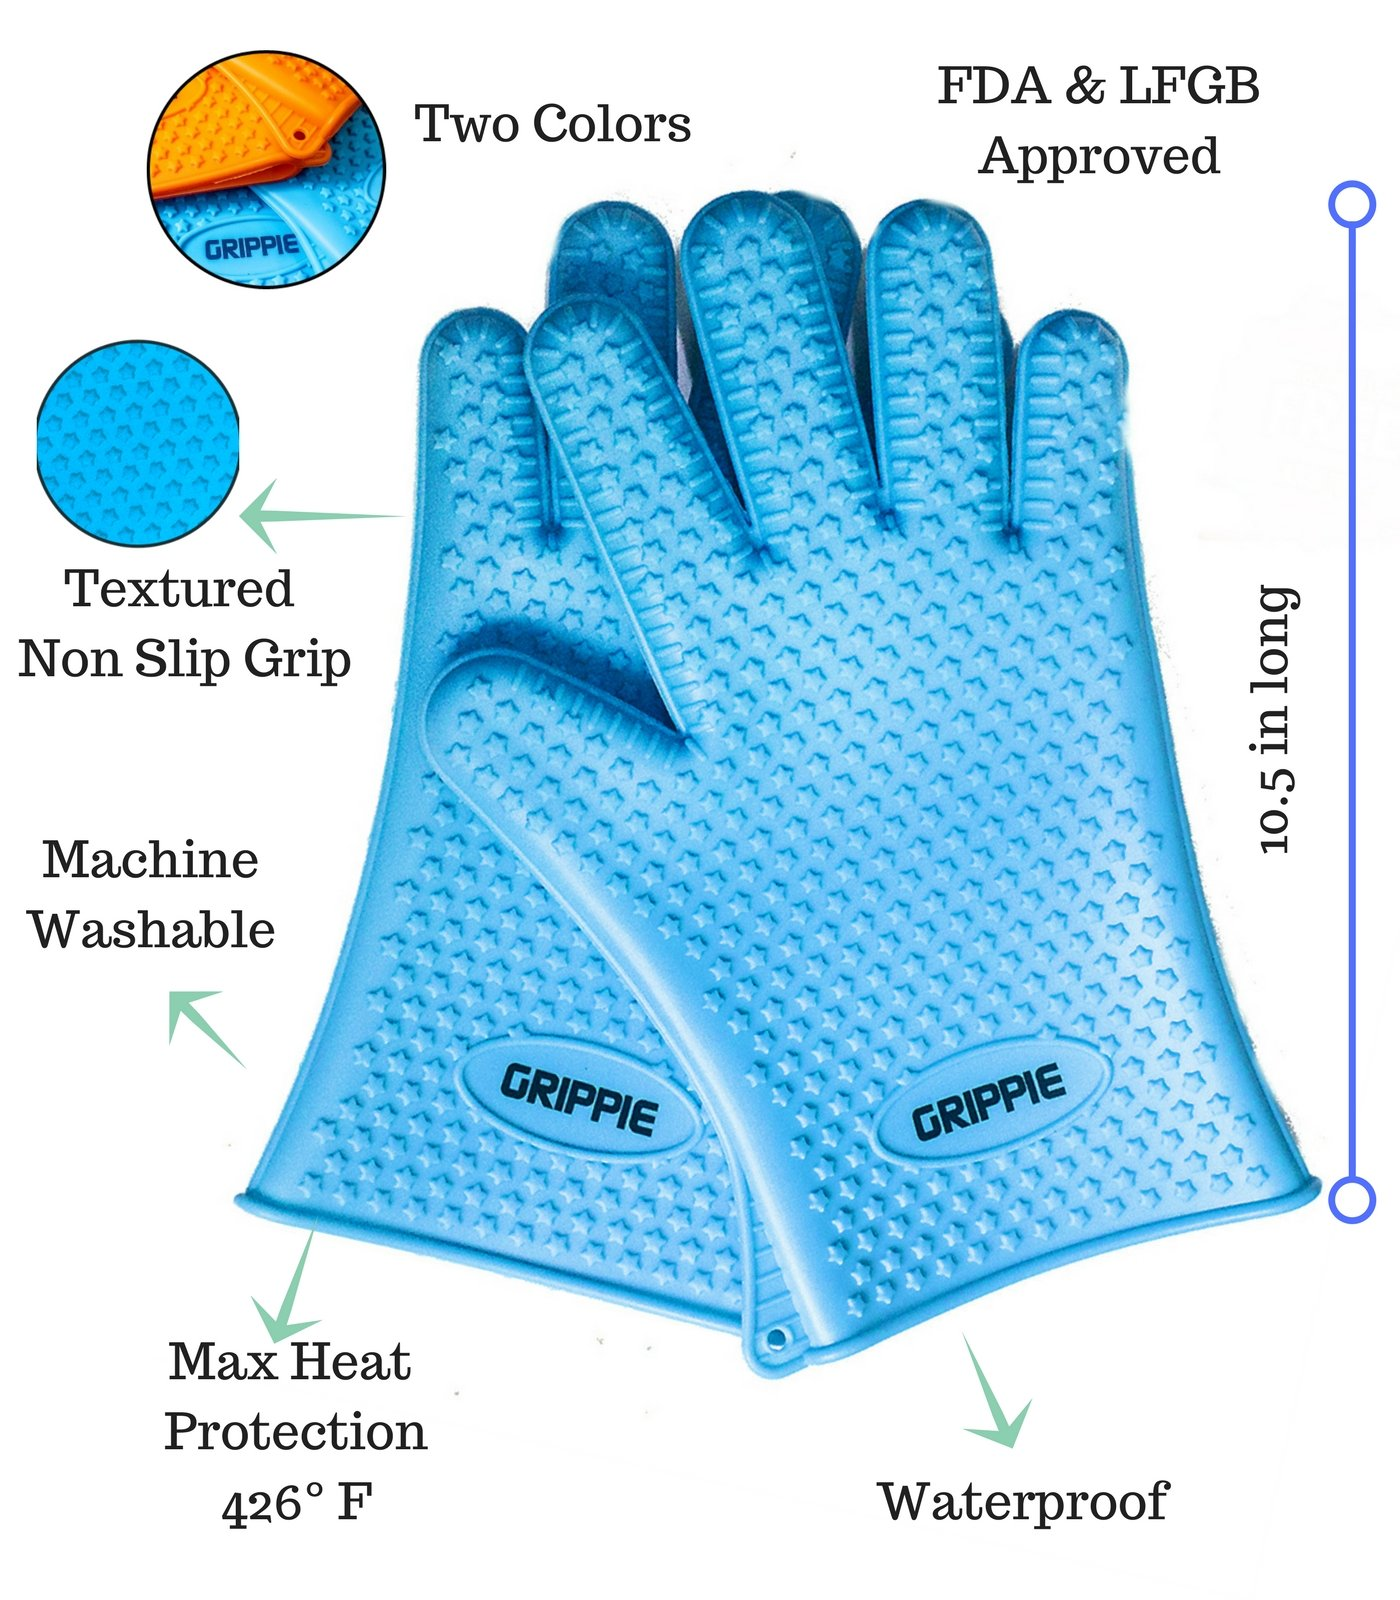 BBQ, Grilling & Oven Silicone Heat Resistant Cooking Gloves With FREE TONGS & BASTING BRUSH By Grippie–Premium Quality-Maximum Protection & Comfort–Lightweight & Dishwasher Safe–Blue & Orange